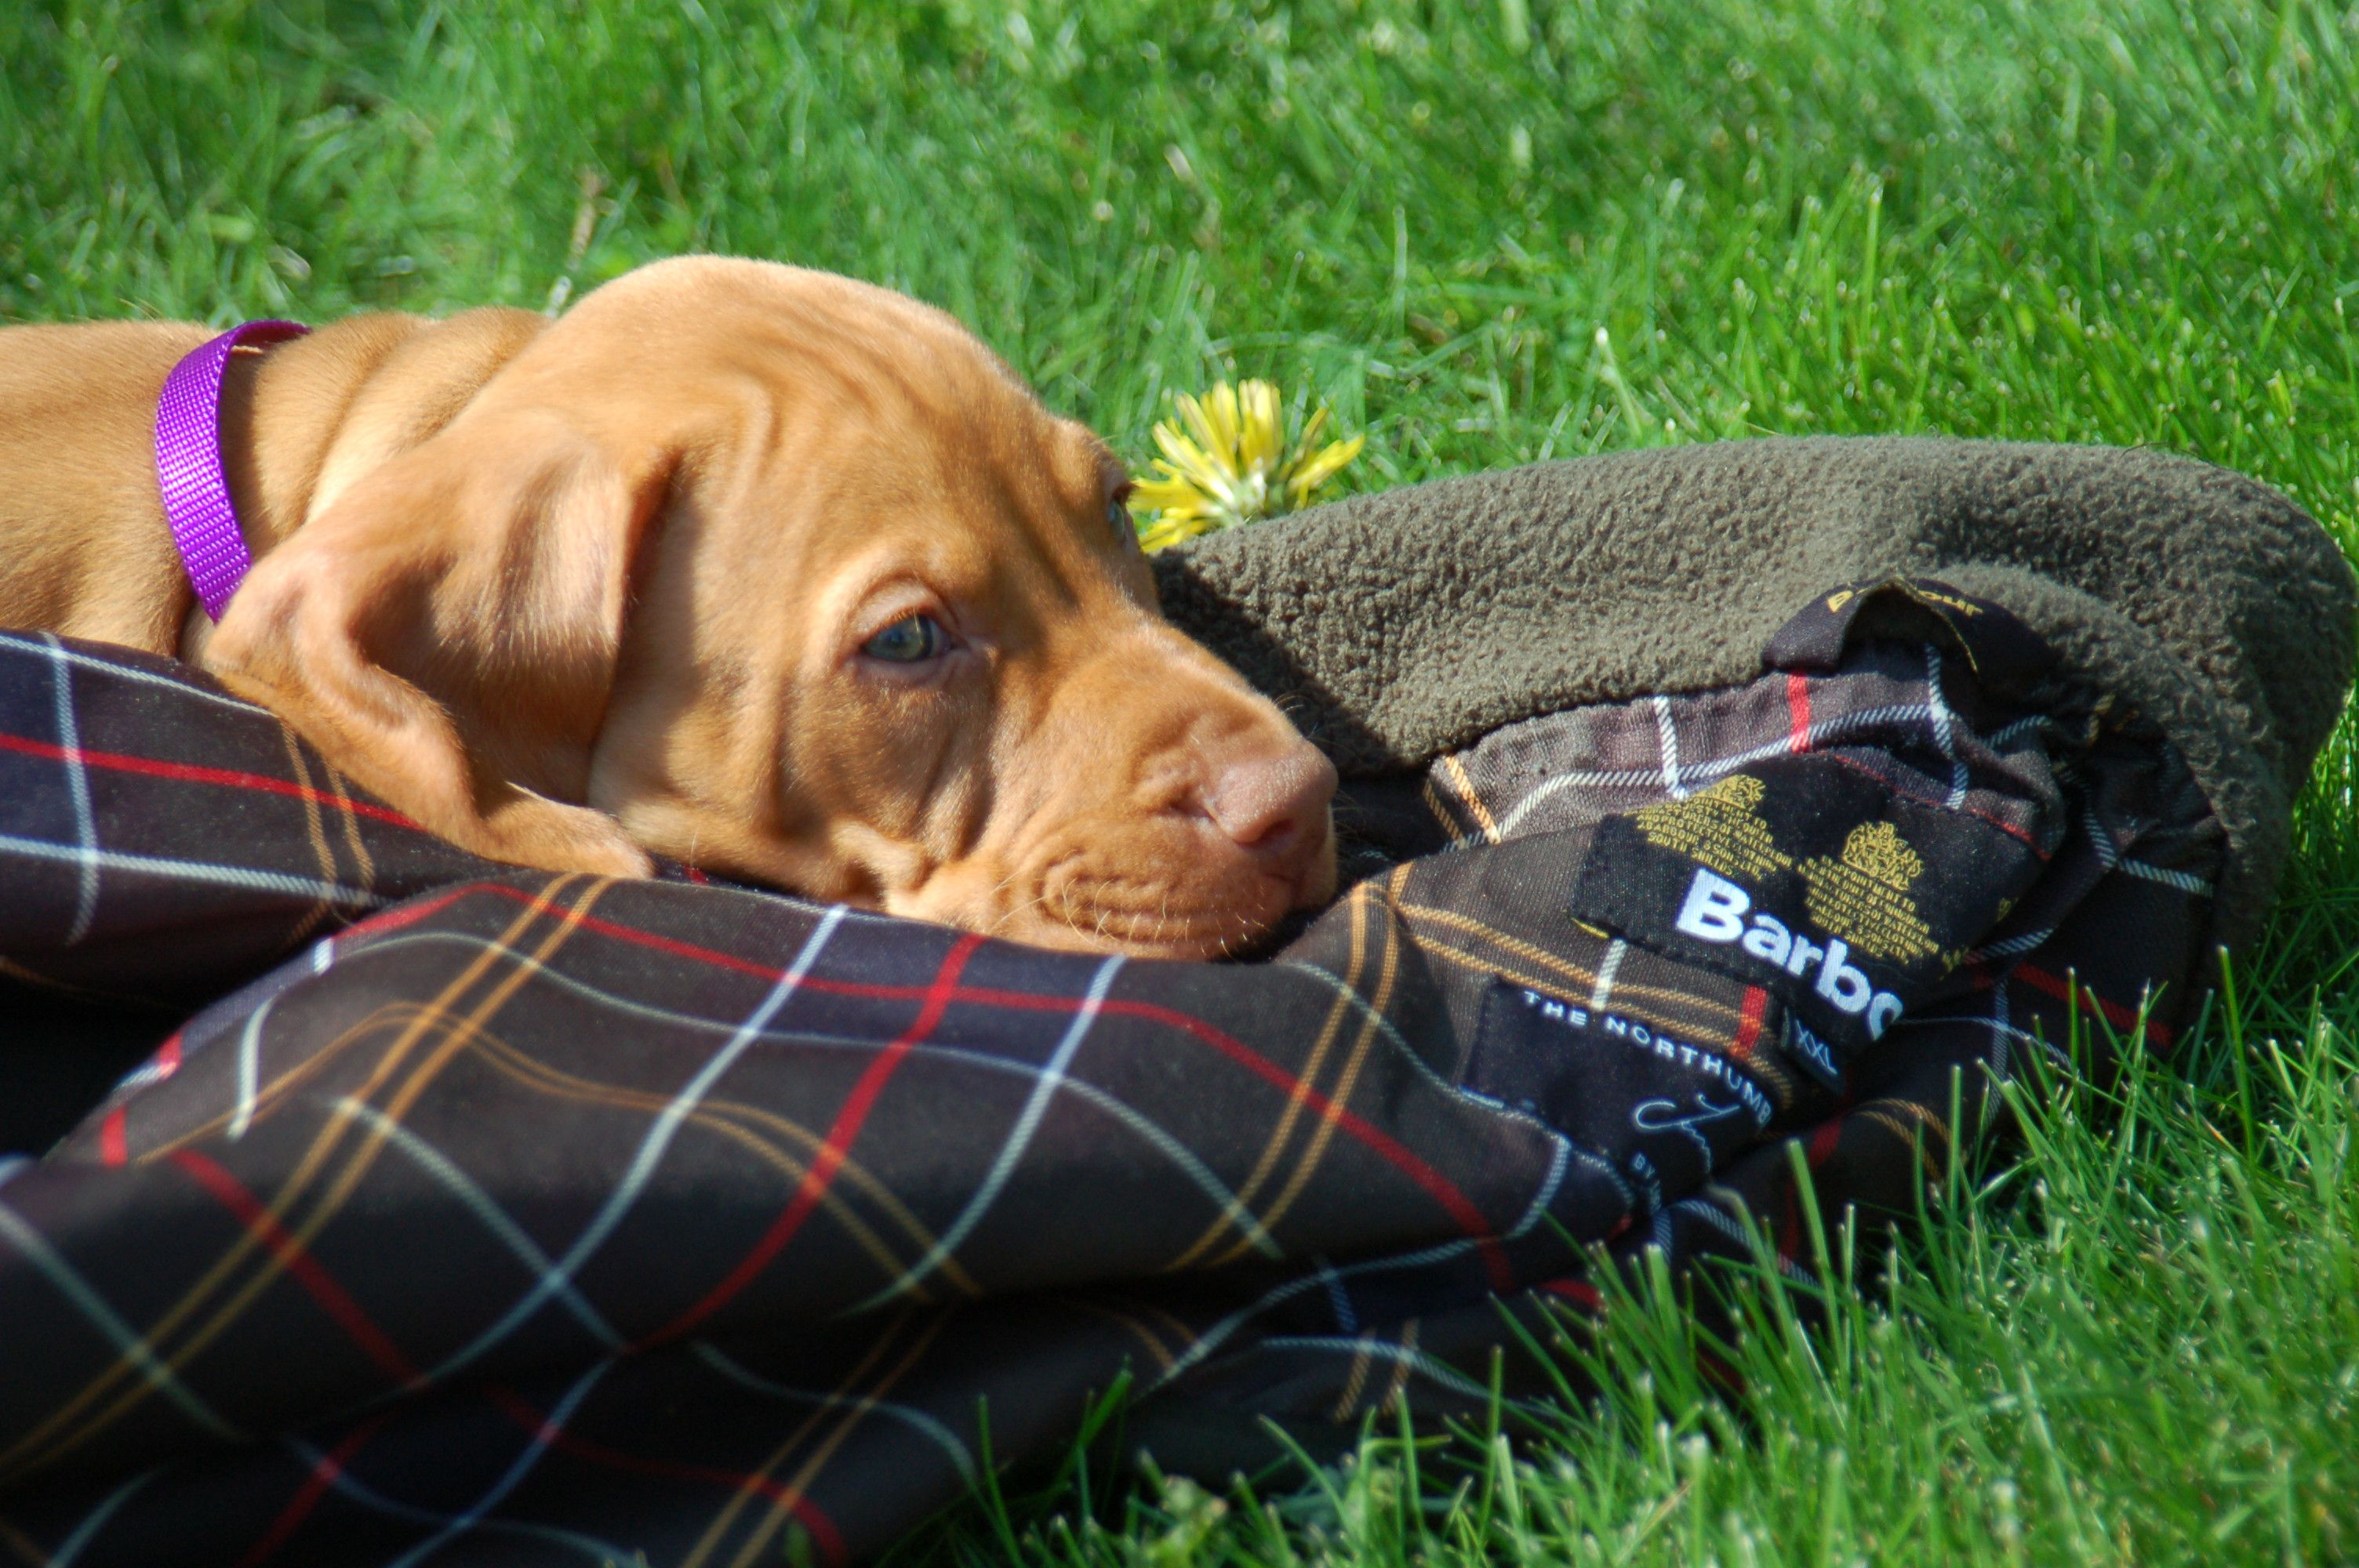 Taking a rest on a Barbour gilet after a hard day running